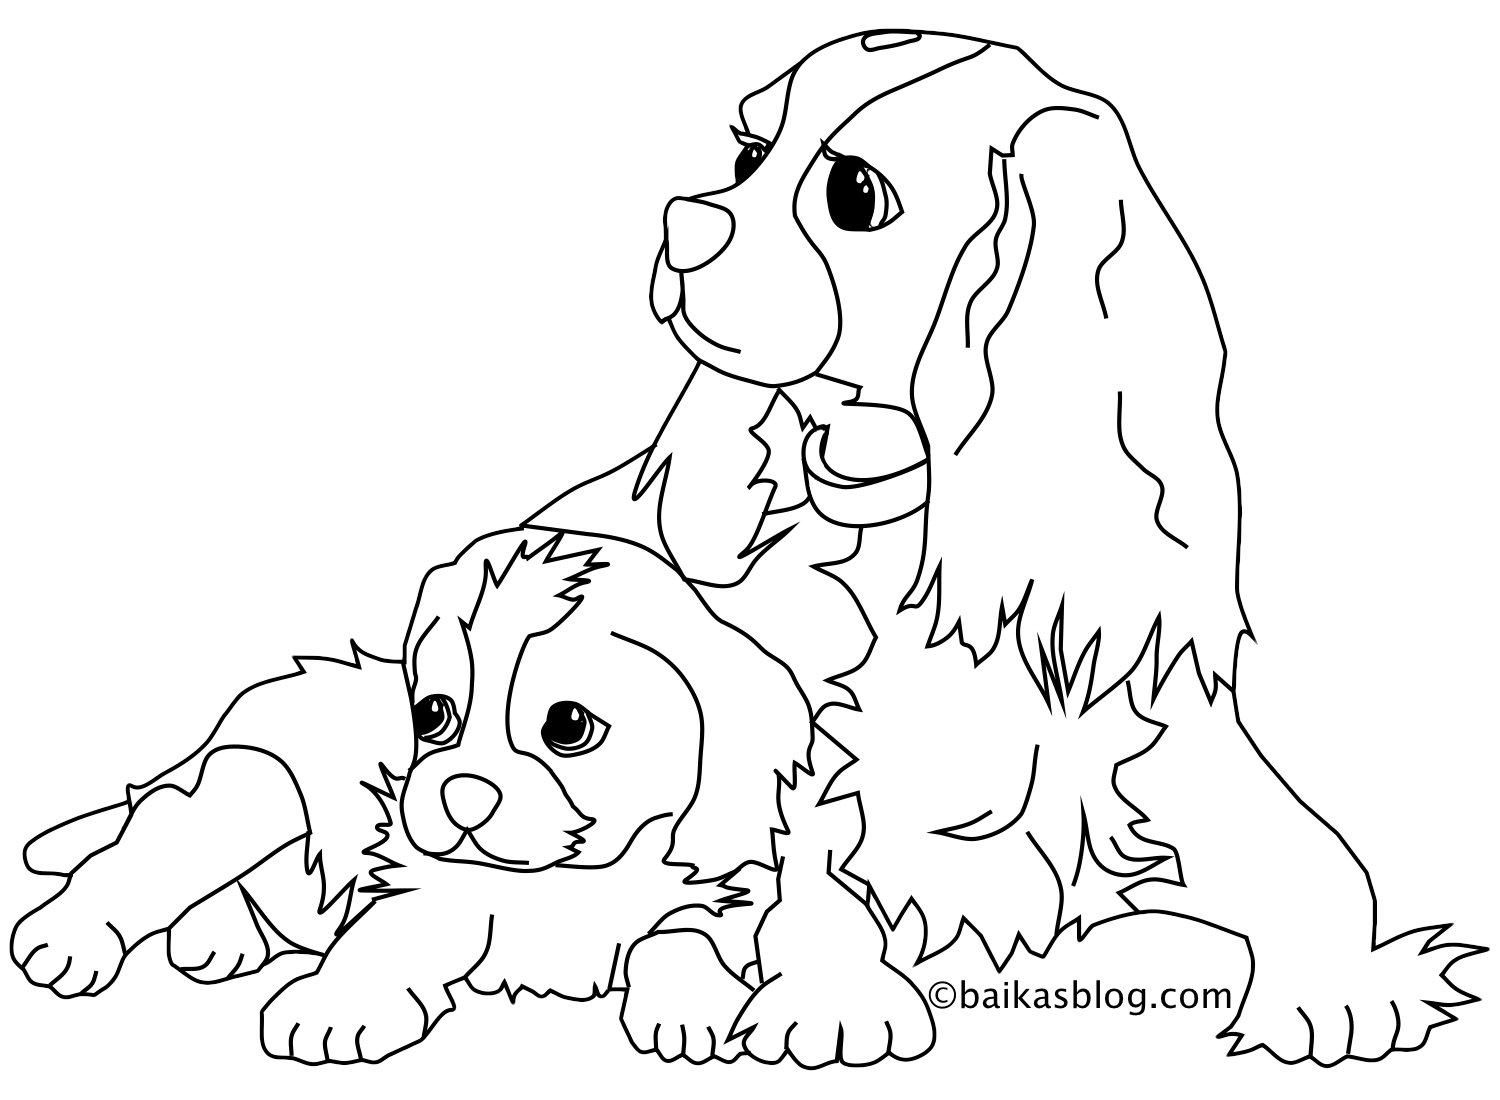 coloring dog for kids dog free to color for children two lovely dogs dogs coloring kids dog for